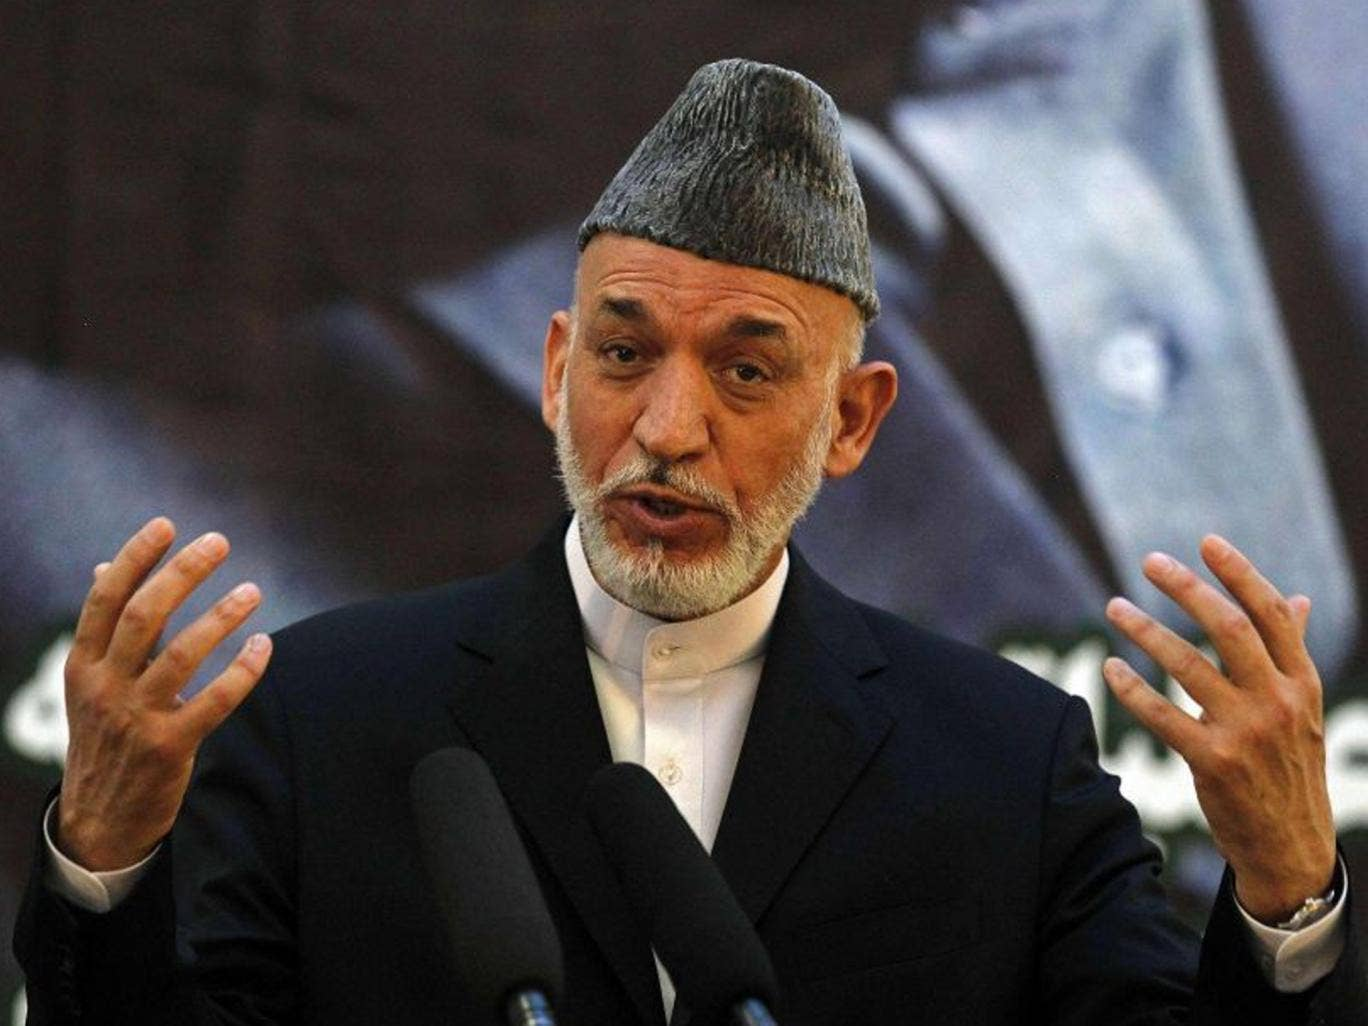 In a terse statement Hamid Karzai said negotiations with the US on what American and coalition security forces will remain in the country after 2014 have been put on hold